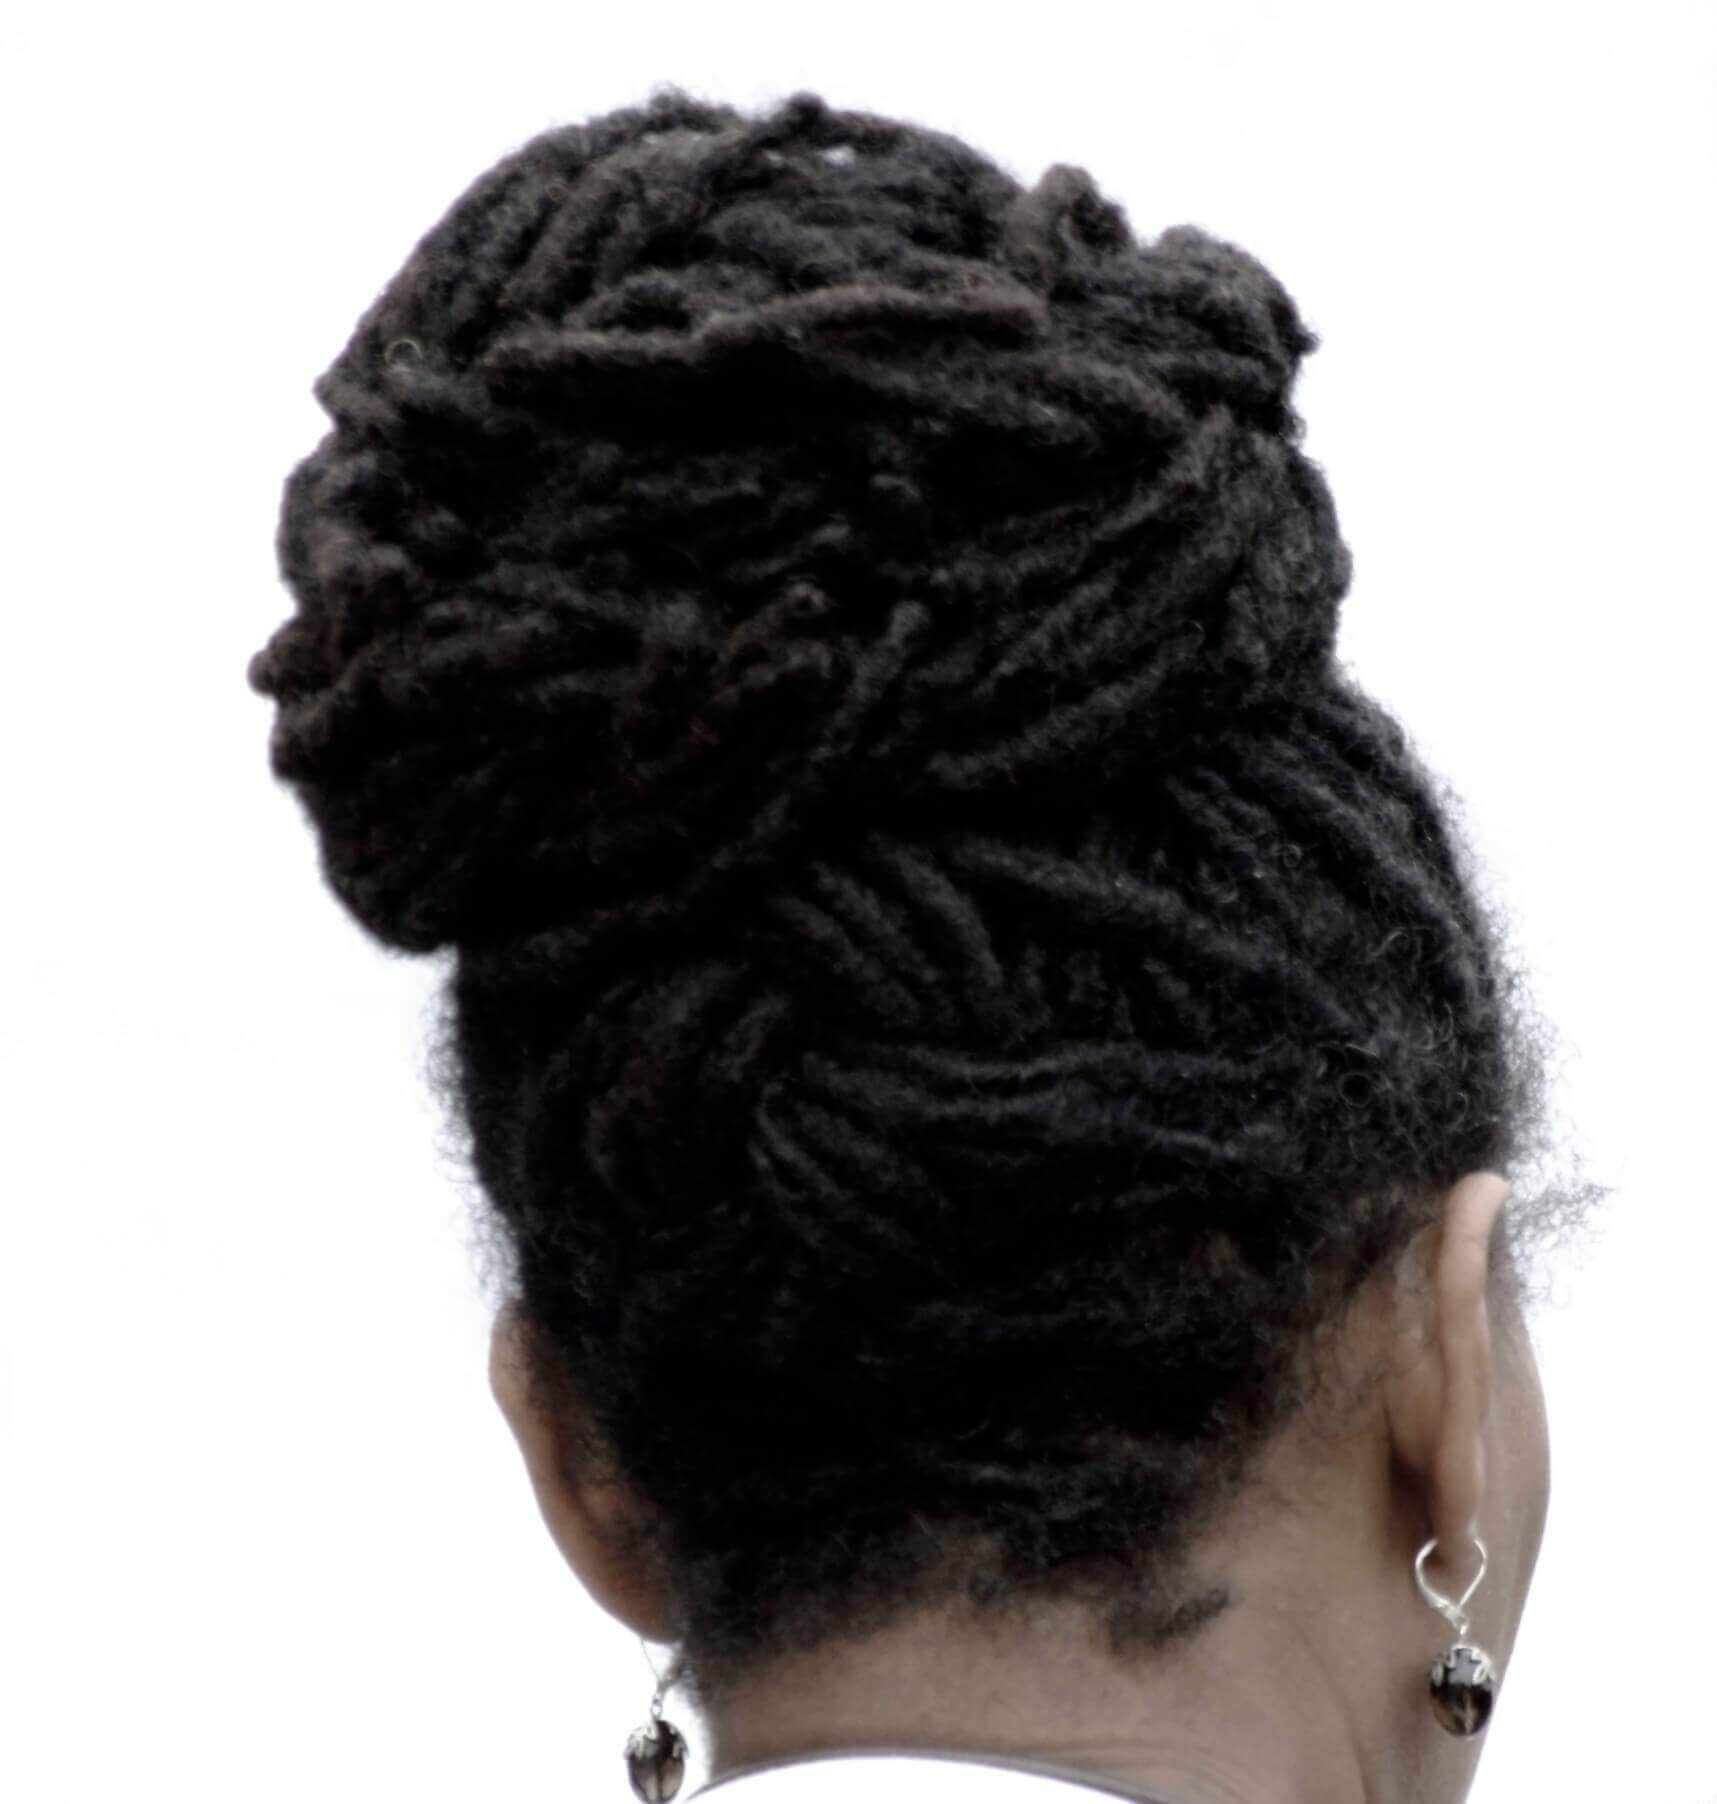 dreadlock hairstyles top knot